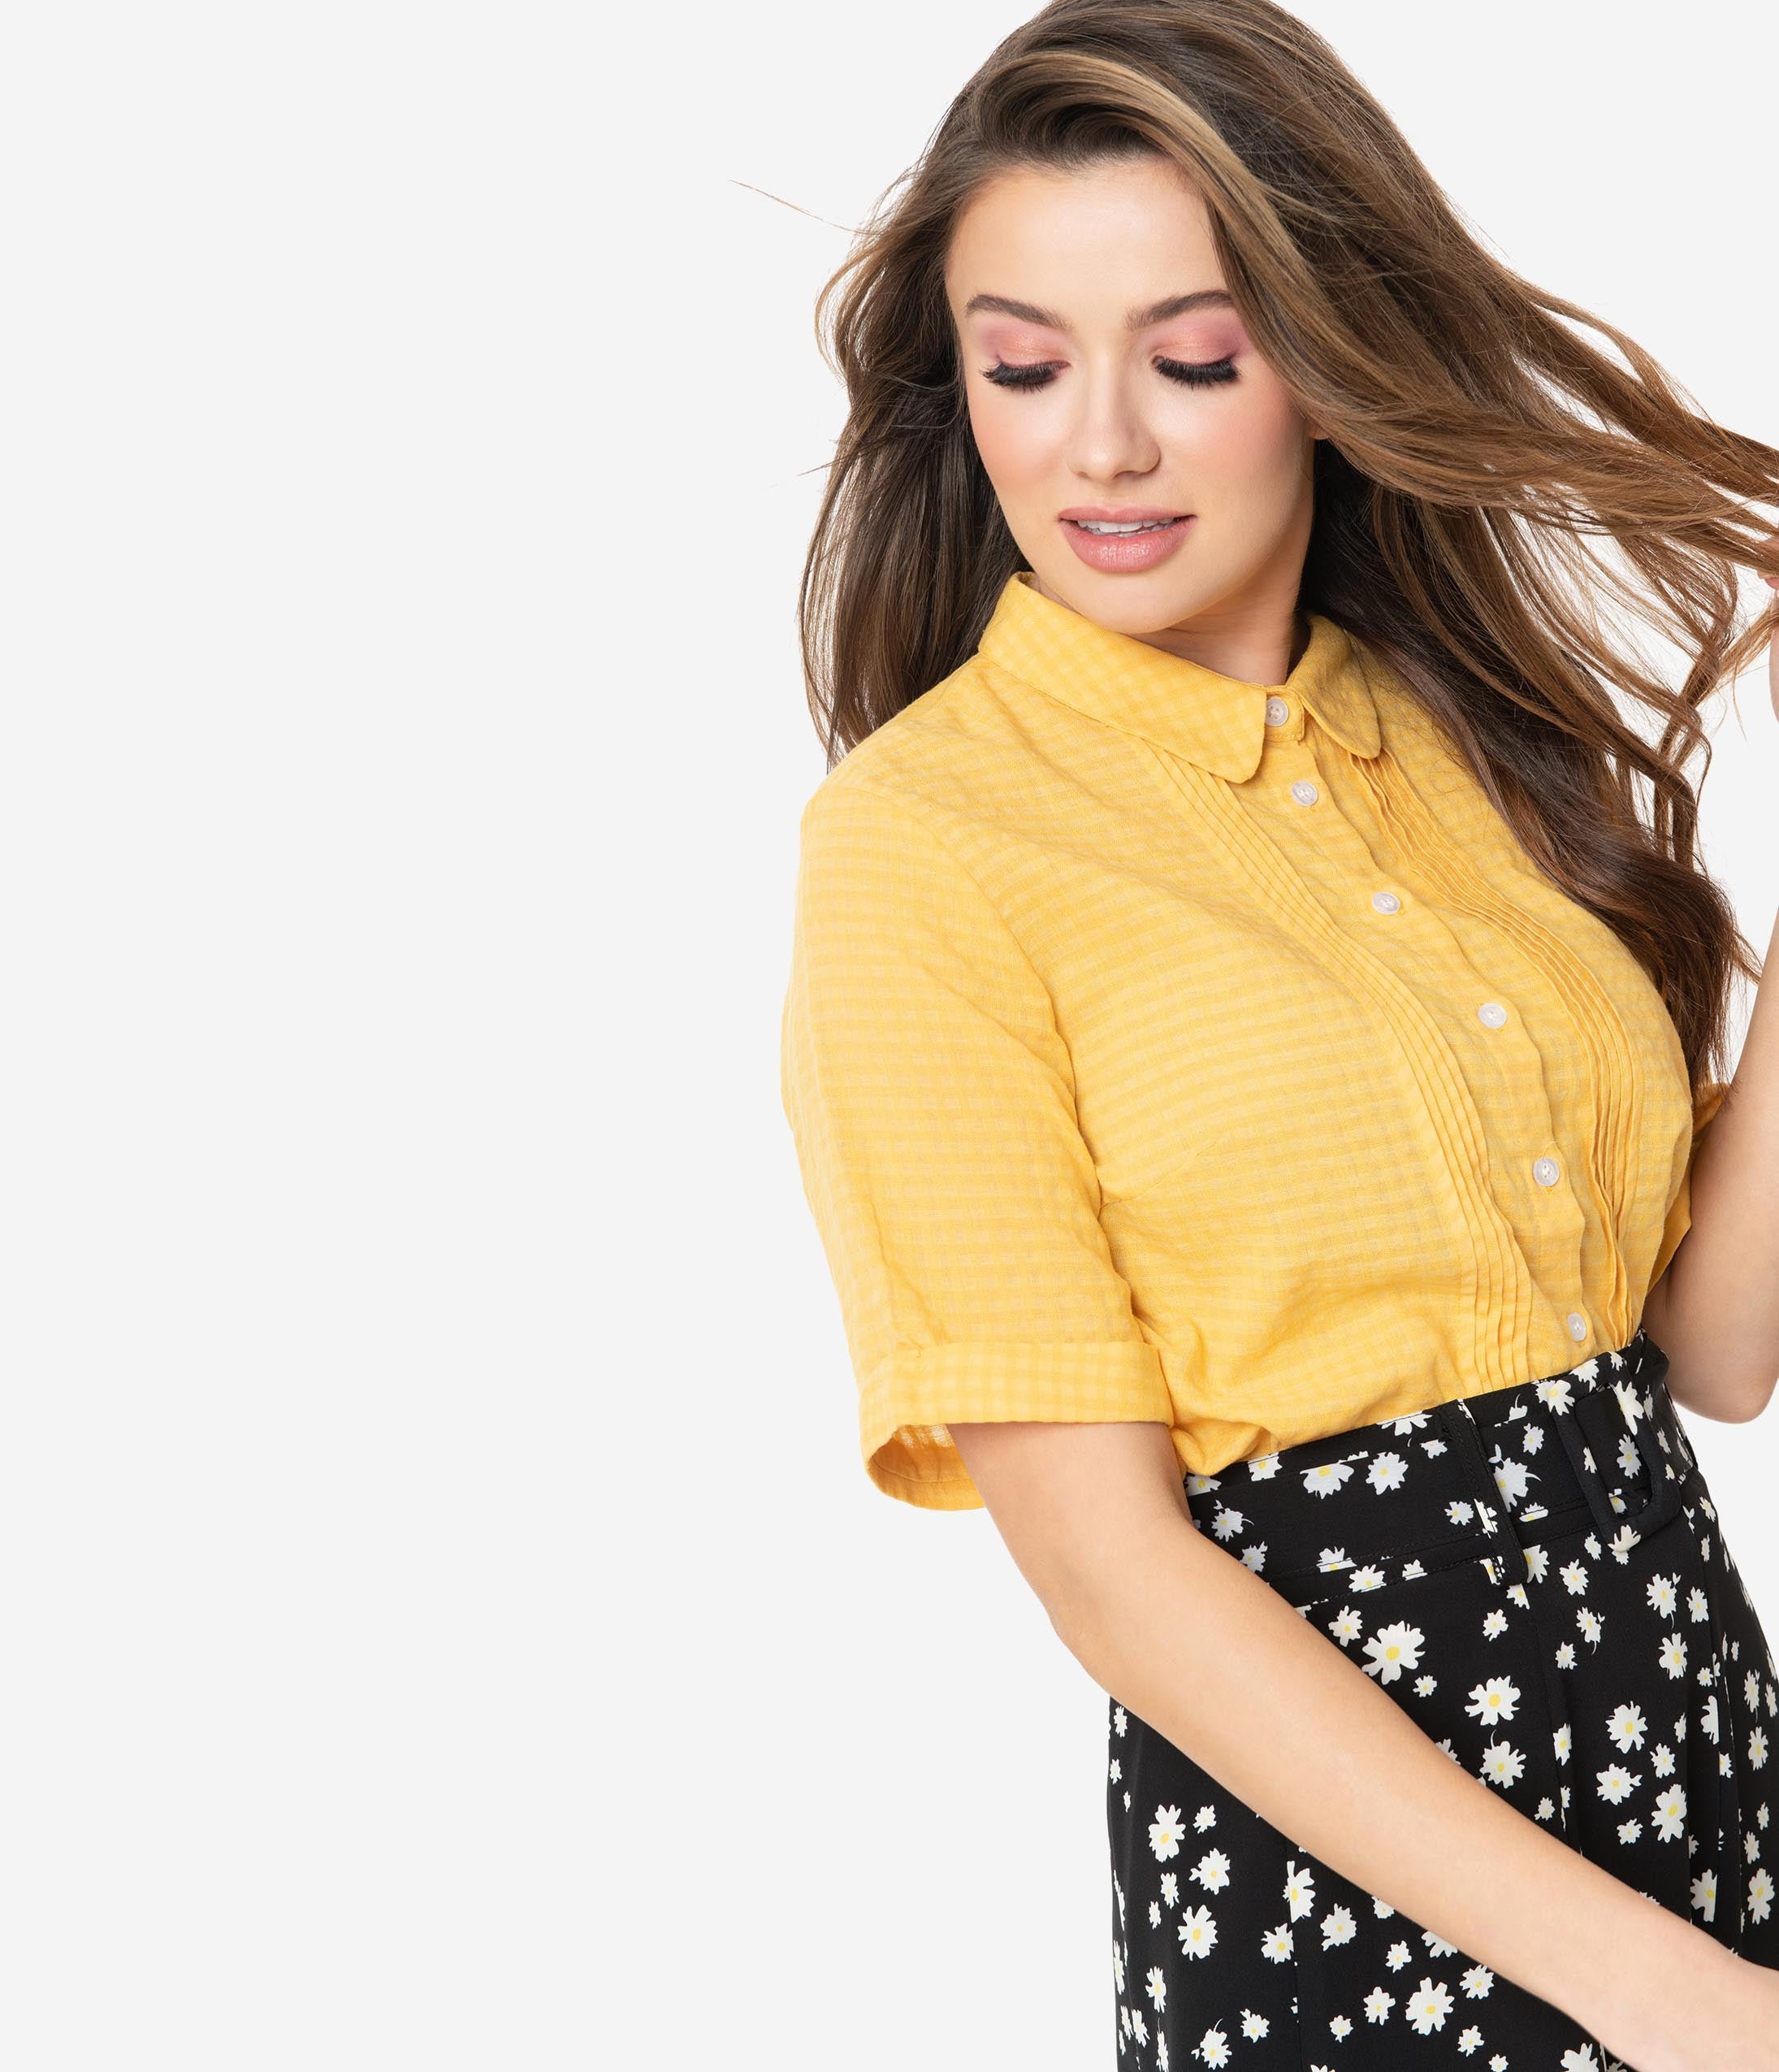 1930s Style Blouses, Shirts, Tops | Vintage Blouses Retro Style Mustard Yellow Gingham Button Up Blouse $46.00 AT vintagedancer.com